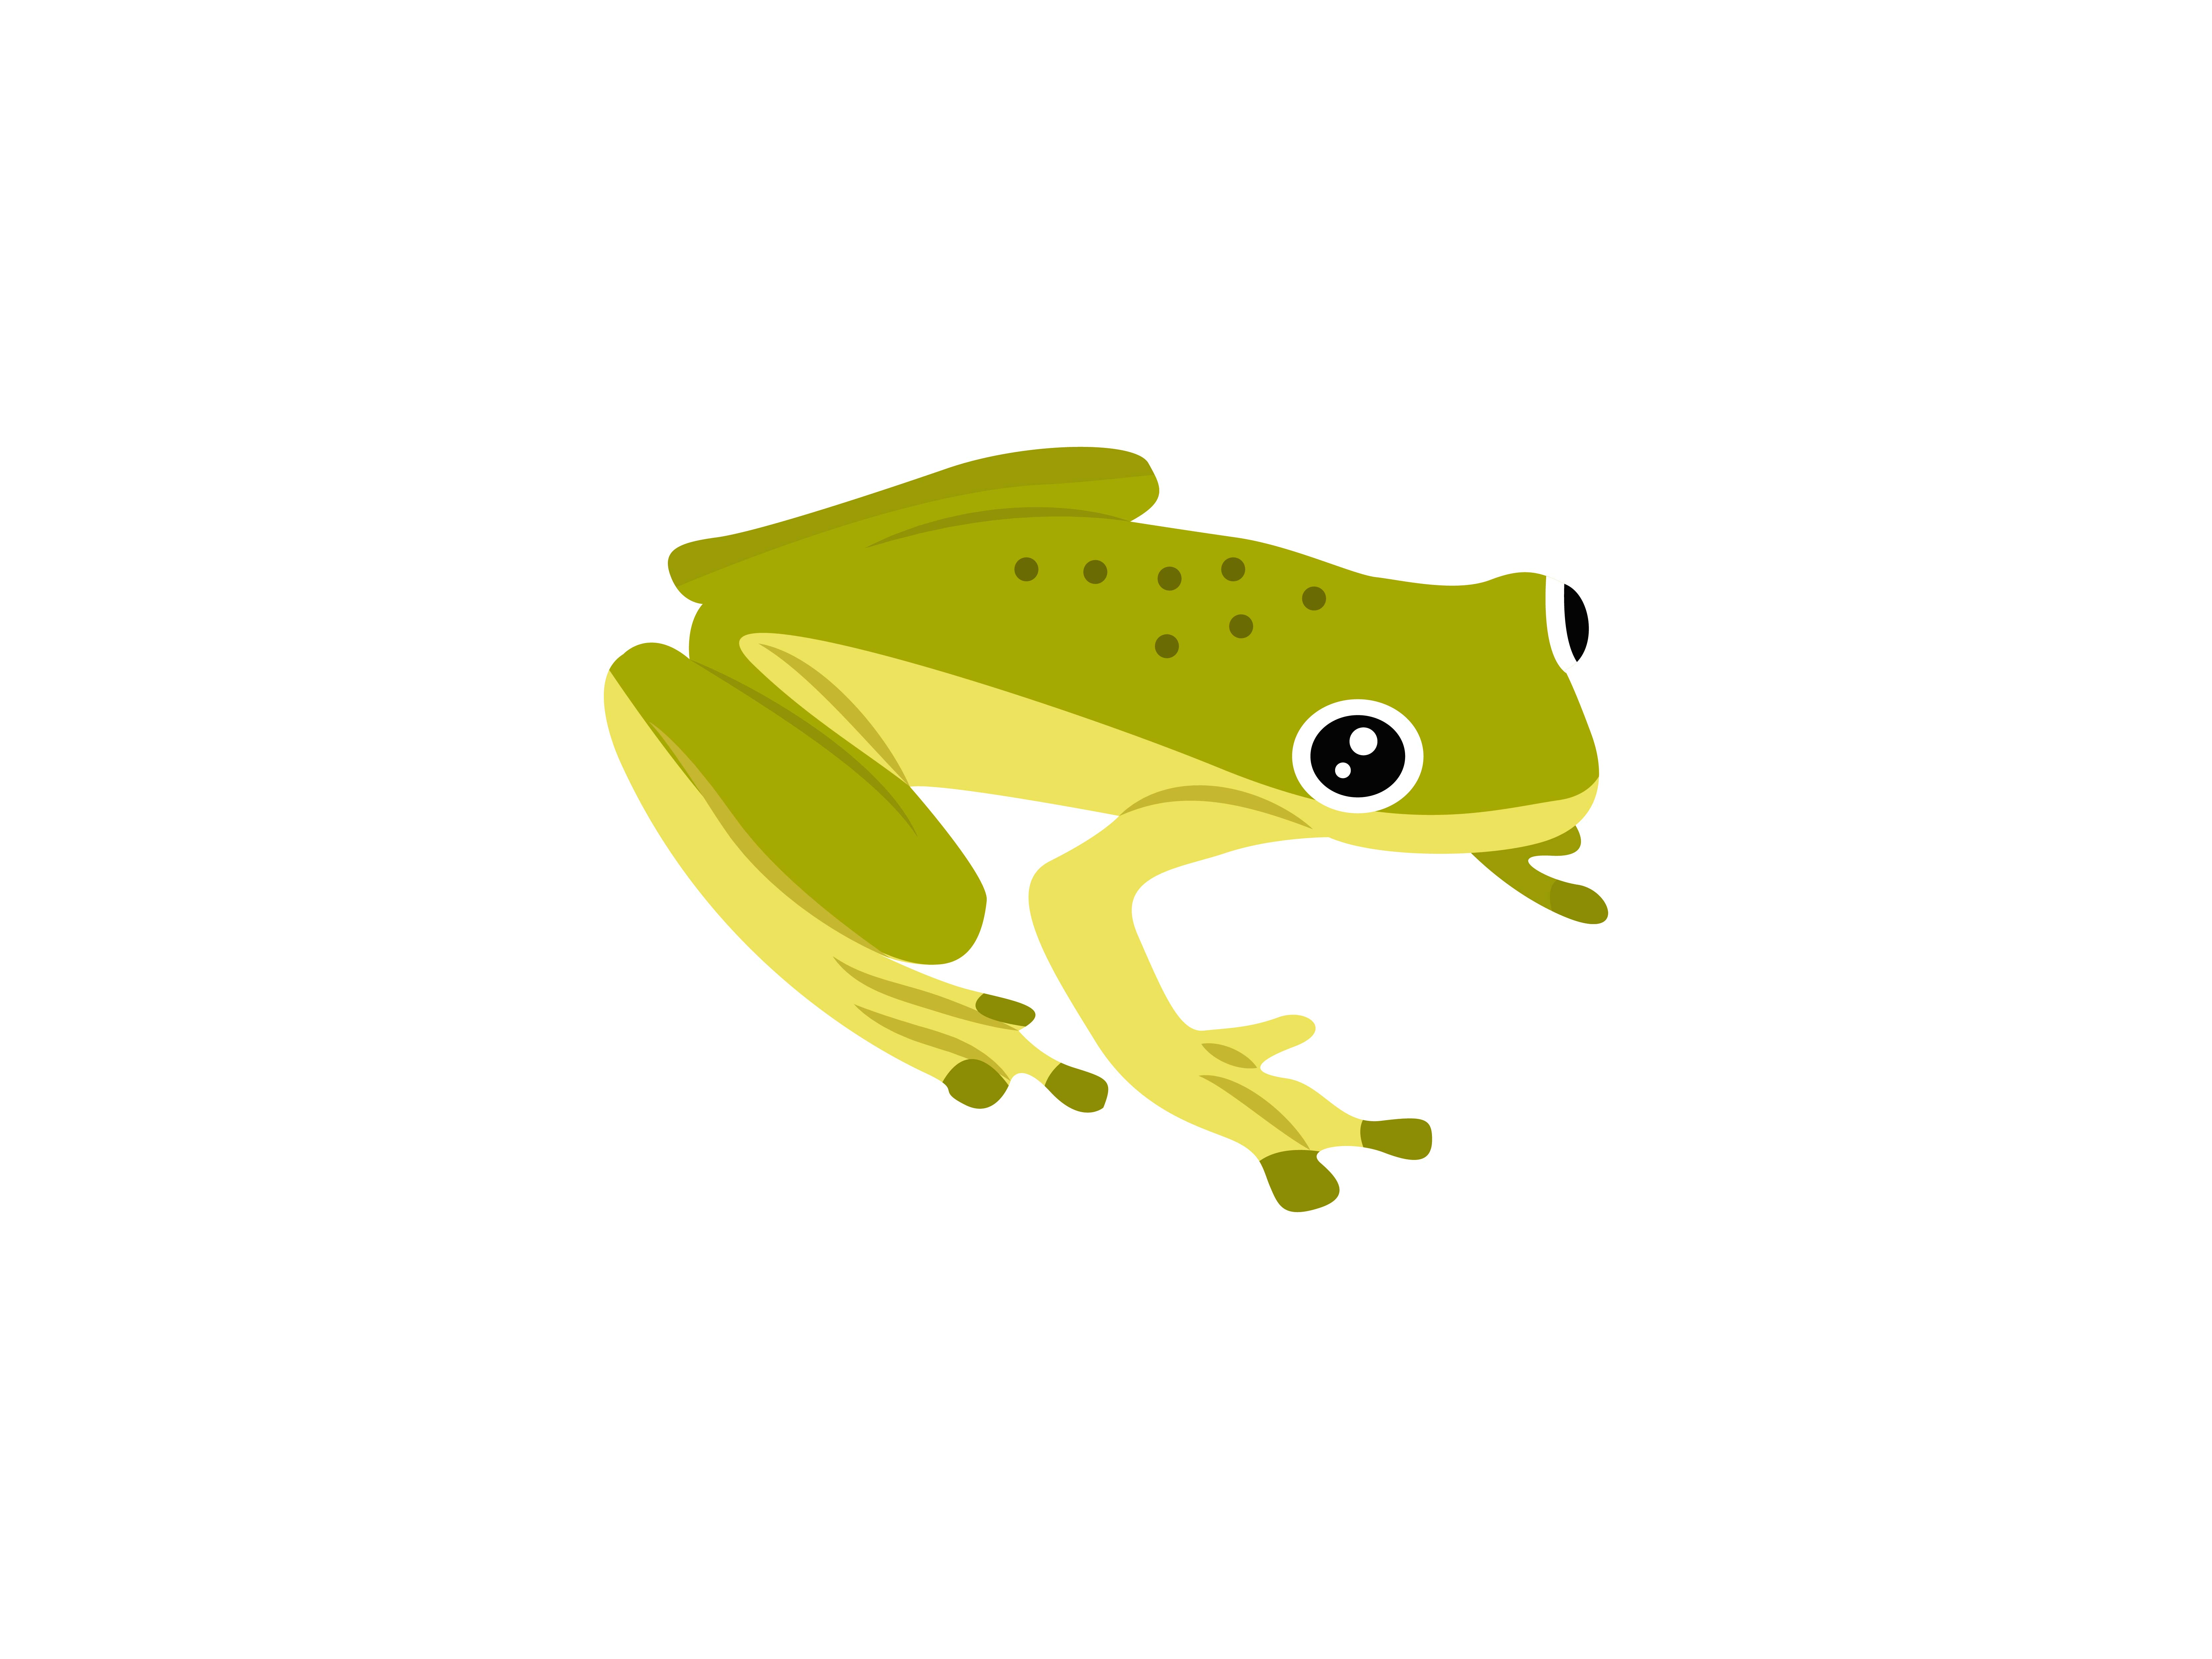 Download Free Hylidae Frog Animal Graphic By Archshape Creative Fabrica for Cricut Explore, Silhouette and other cutting machines.